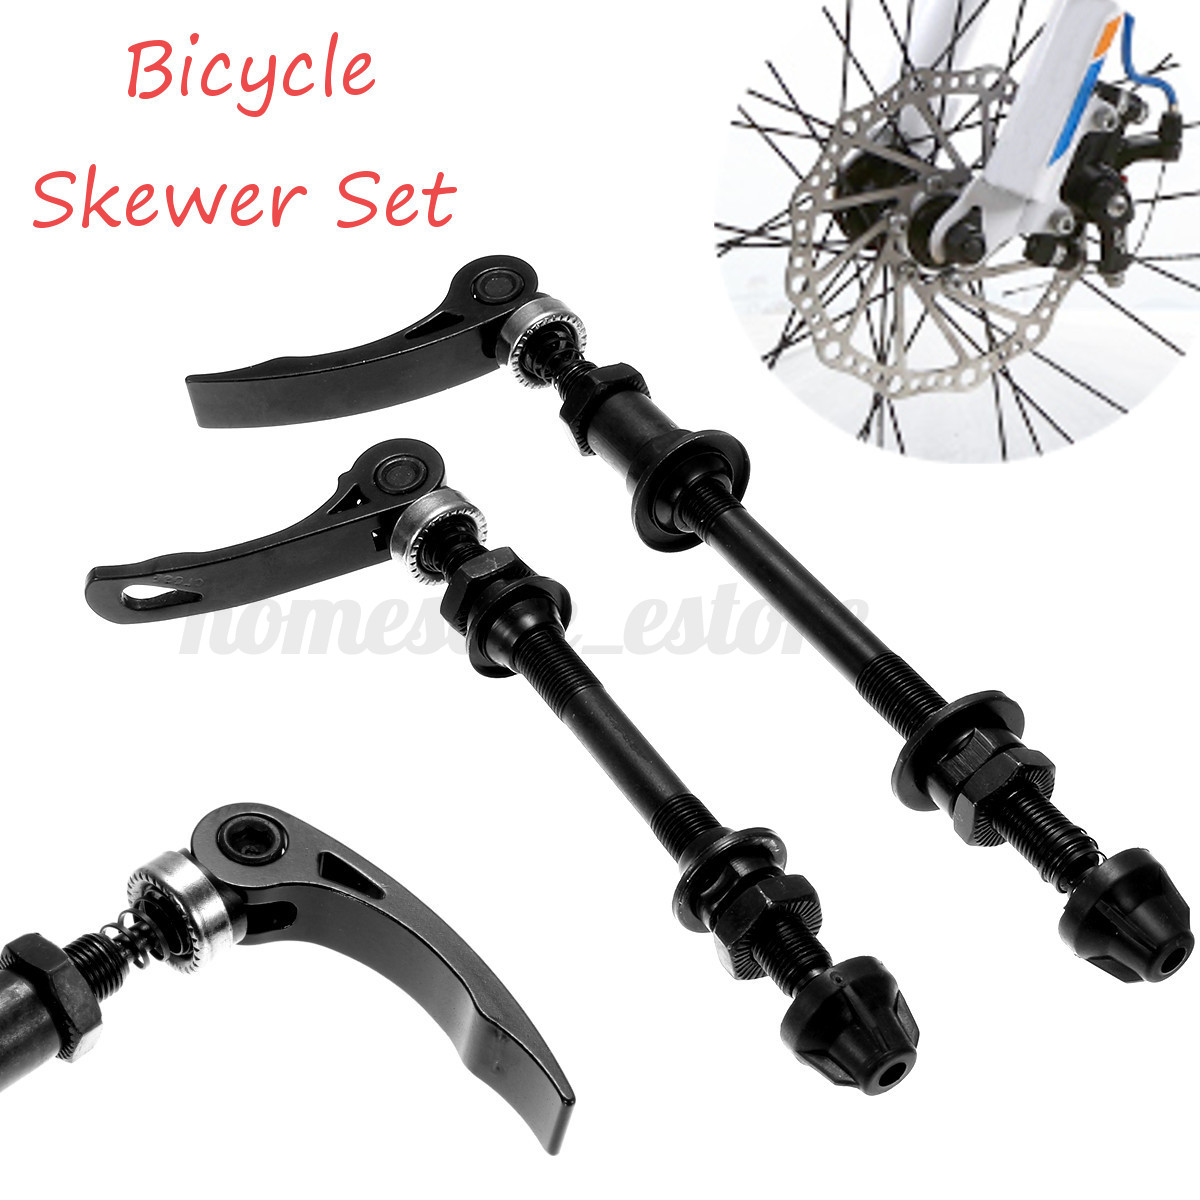 Bicycle Hub Skewers Quick Release Front Rear Hollow Shaft for MTB Road Bicycle